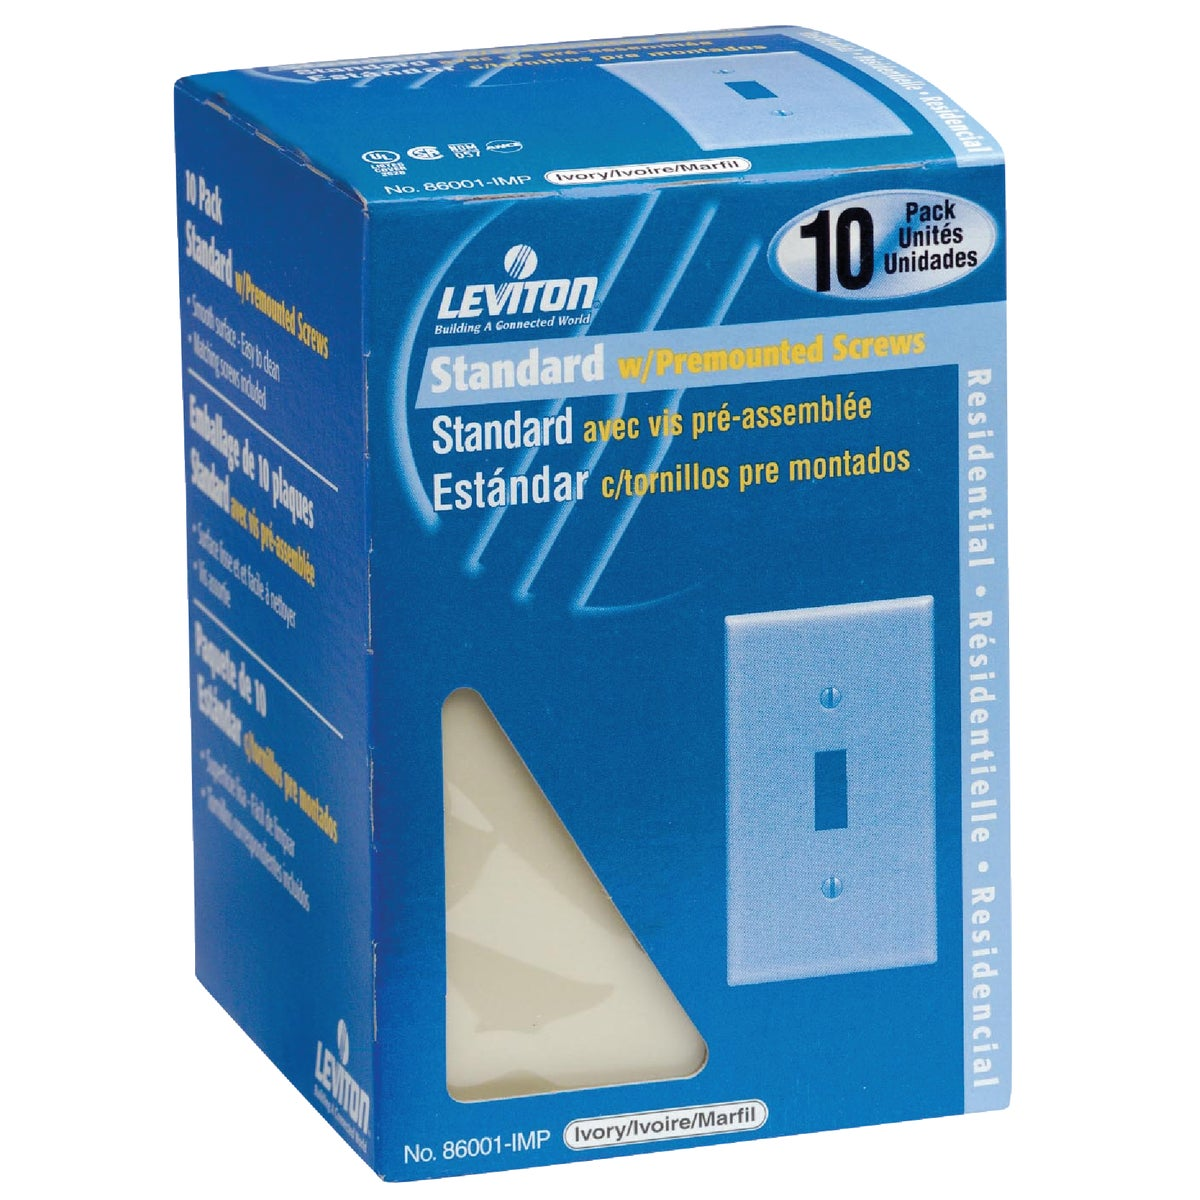 10PK IV 1TGL SWITCHPLATE - M25-86001-IMP by Leviton Mfg Co